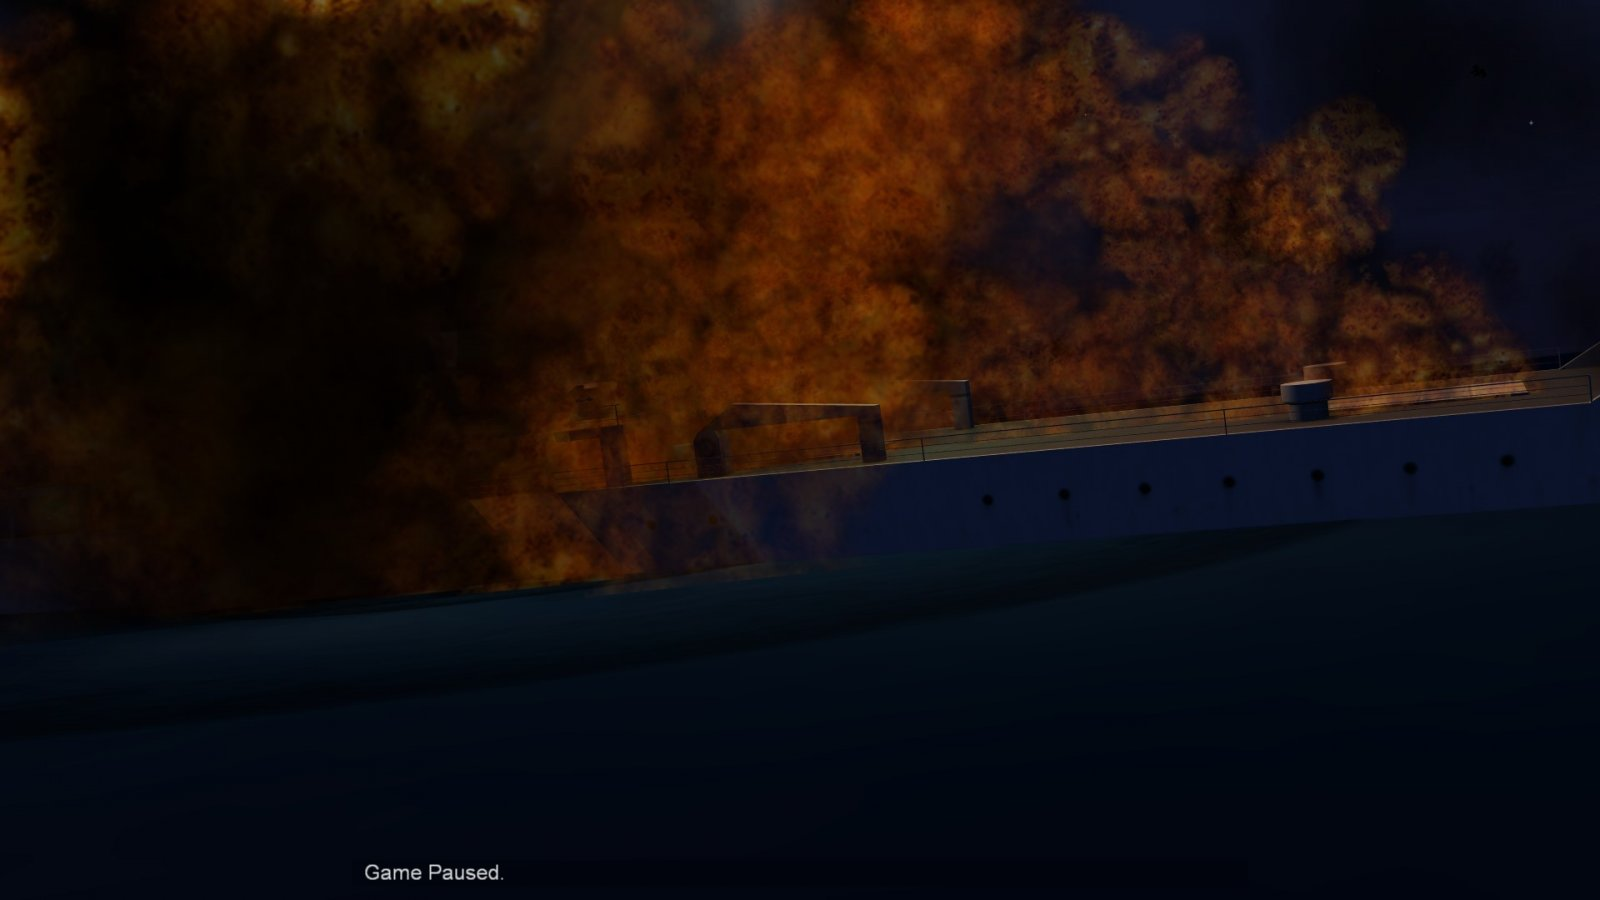 BURNING RO-RO VESSEL